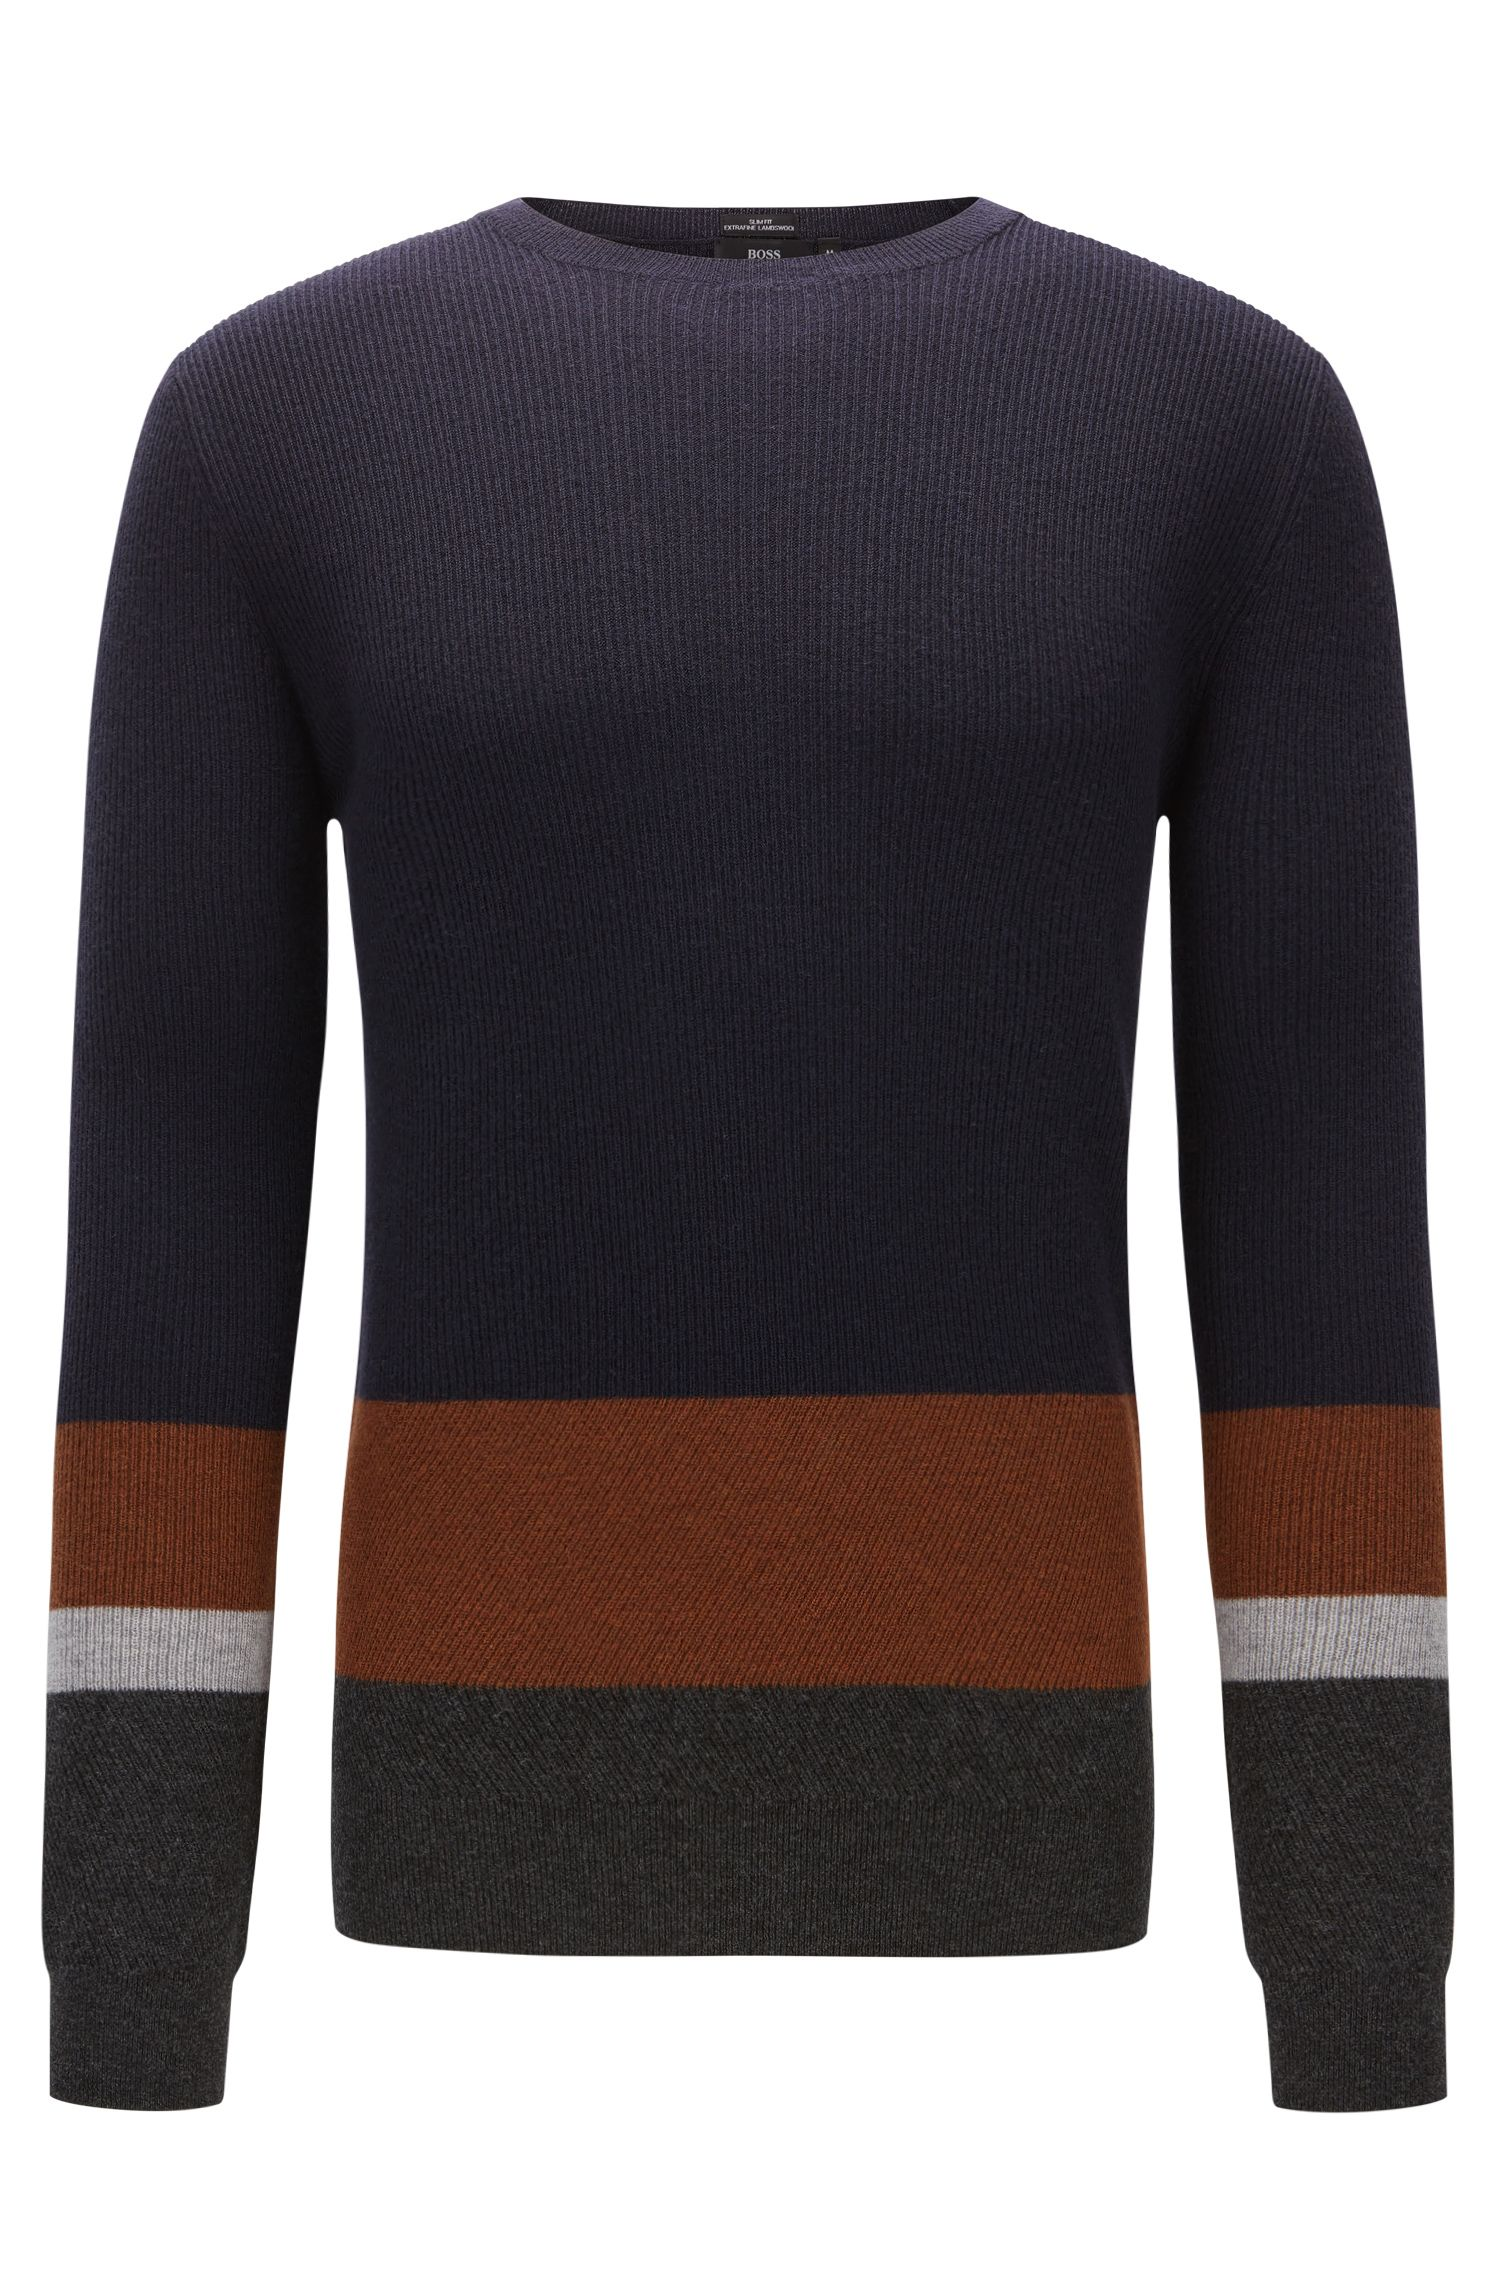 Slim-Fit Pullover aus gerippter Schurwolle im Colour Block Design